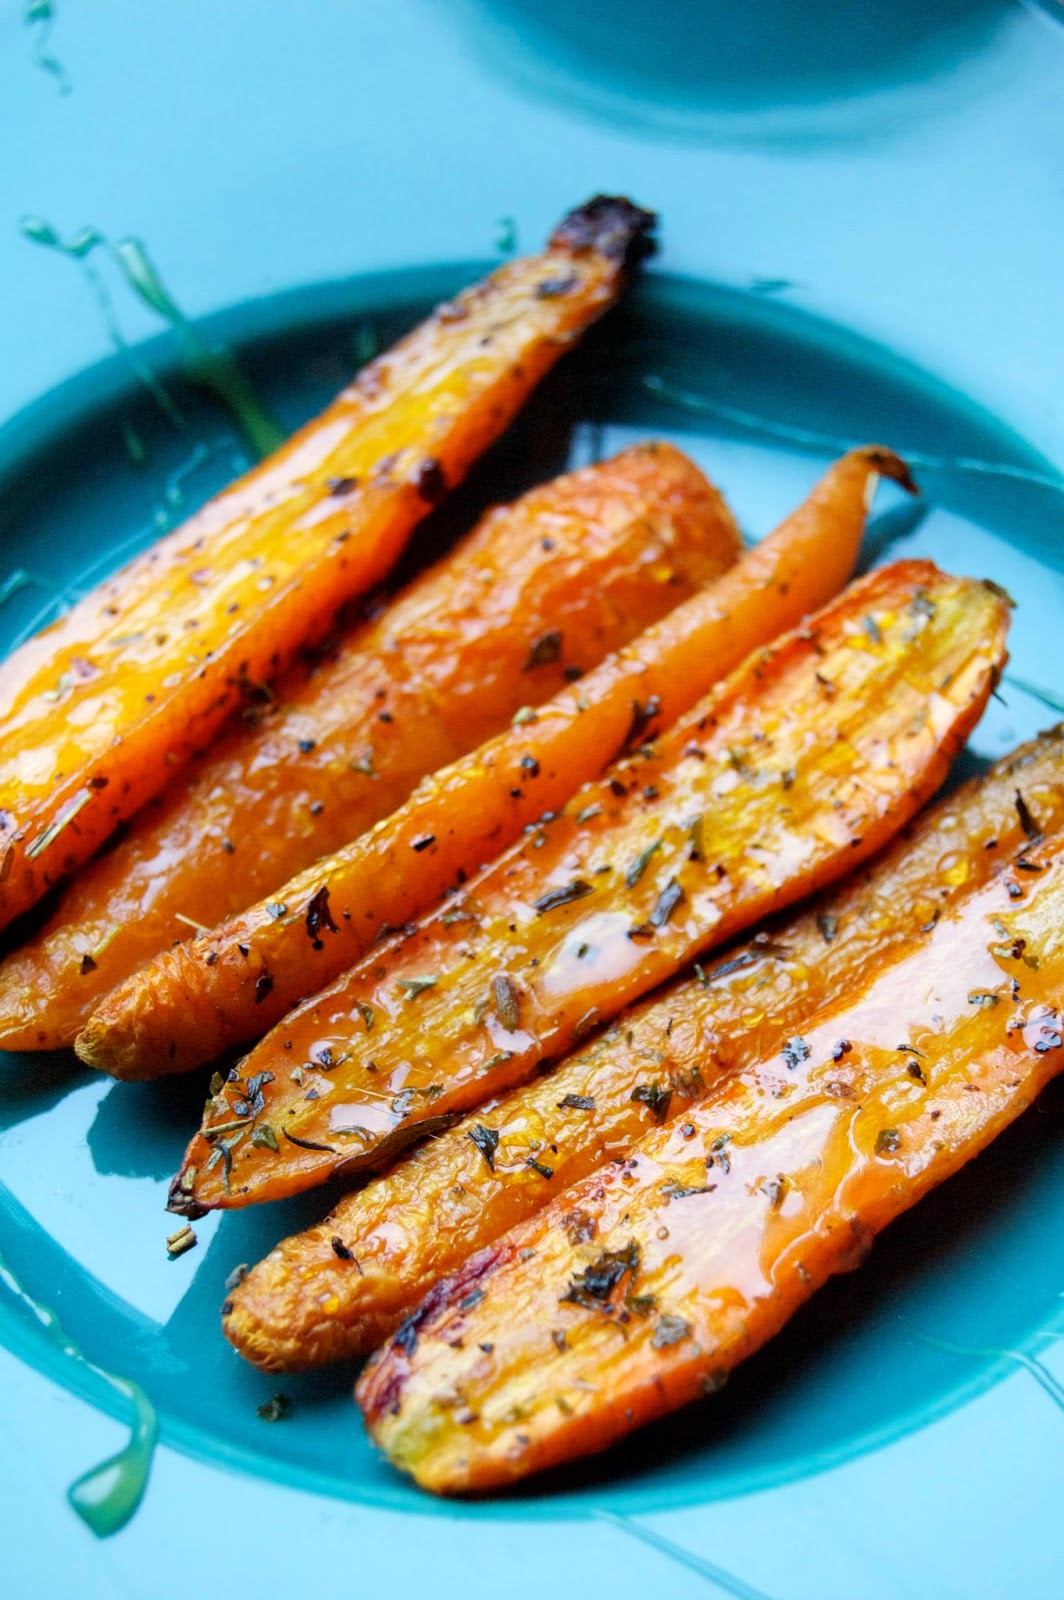 Roasted Carrots with Honey Drizzle | www.kettlercuisine.com